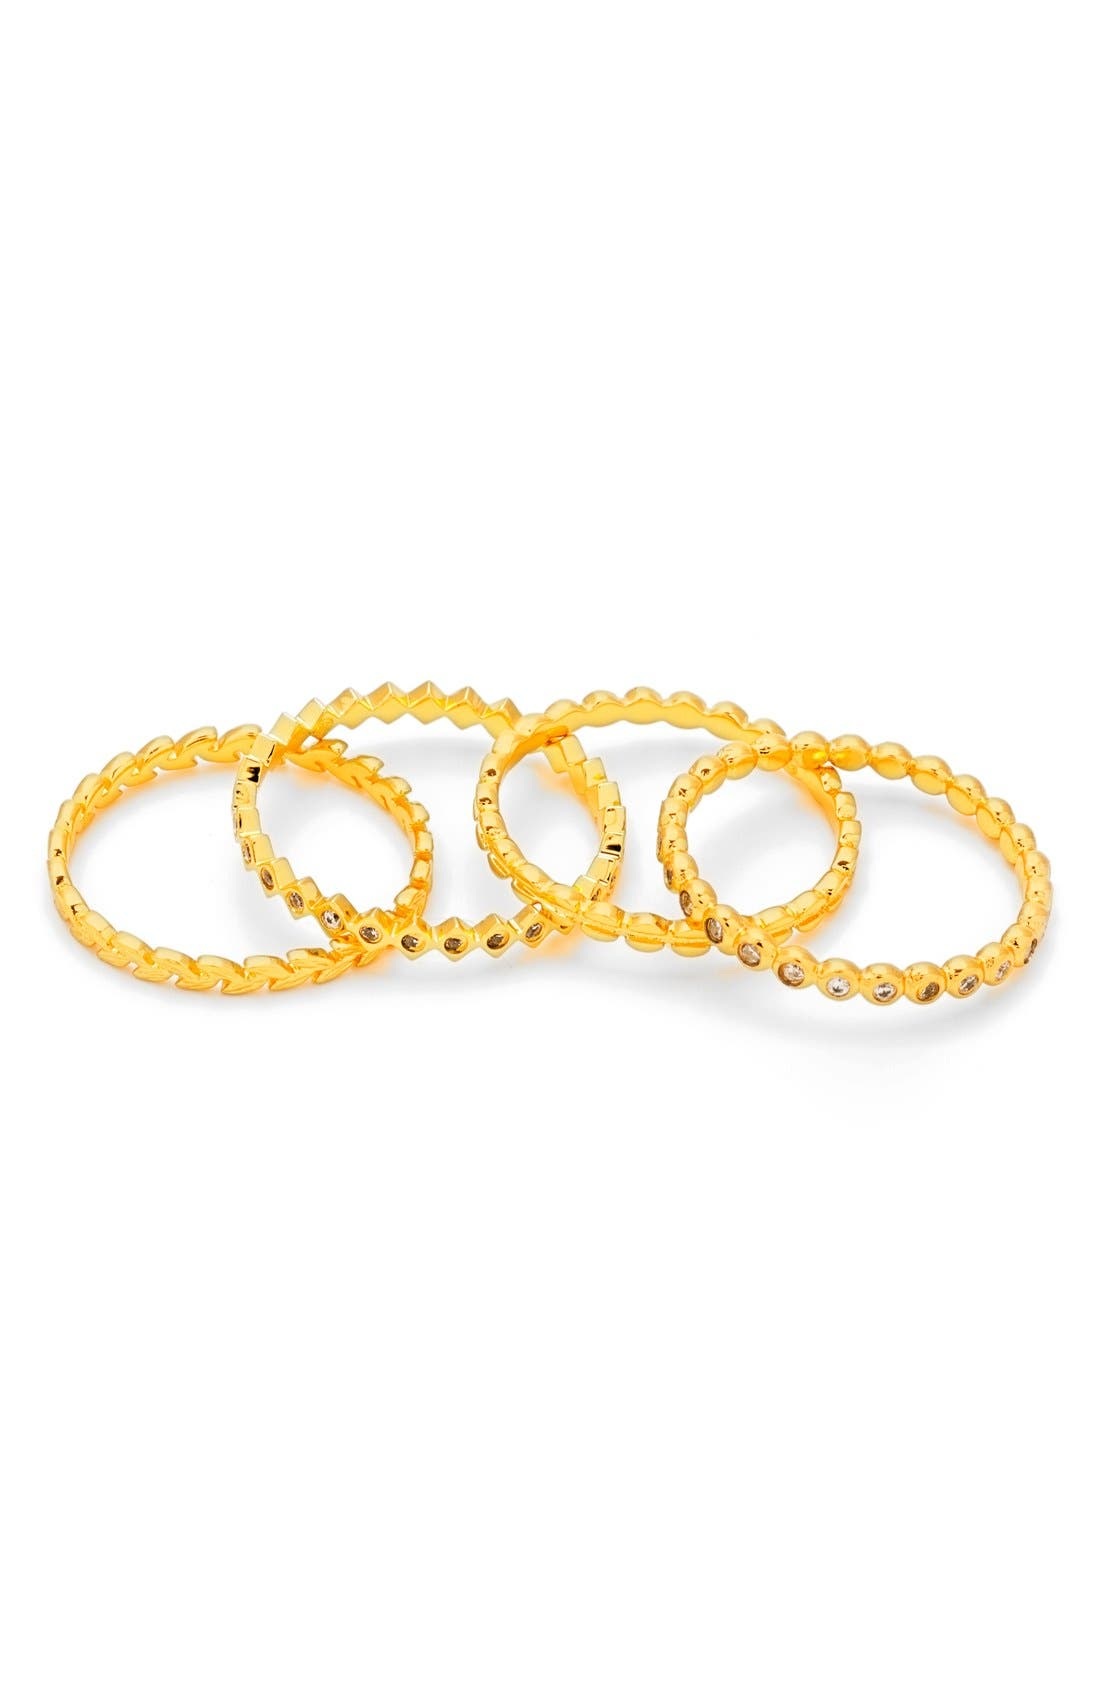 Stackable Set of 4 Band Rings,                             Alternate thumbnail 2, color,                             Gold